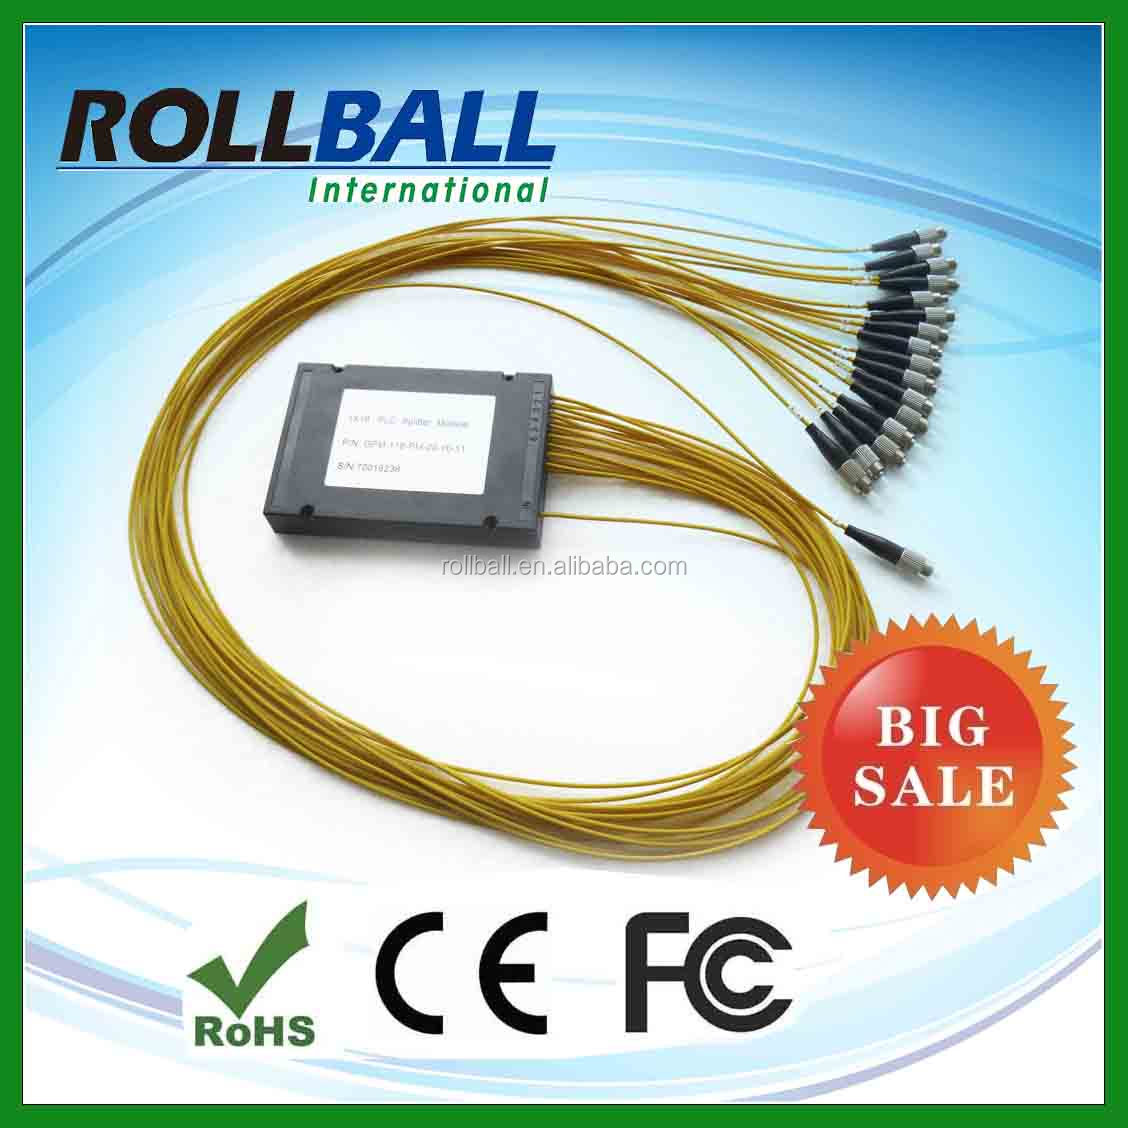 Compact design SC/PC 0.9mm 1x8 plc splitter